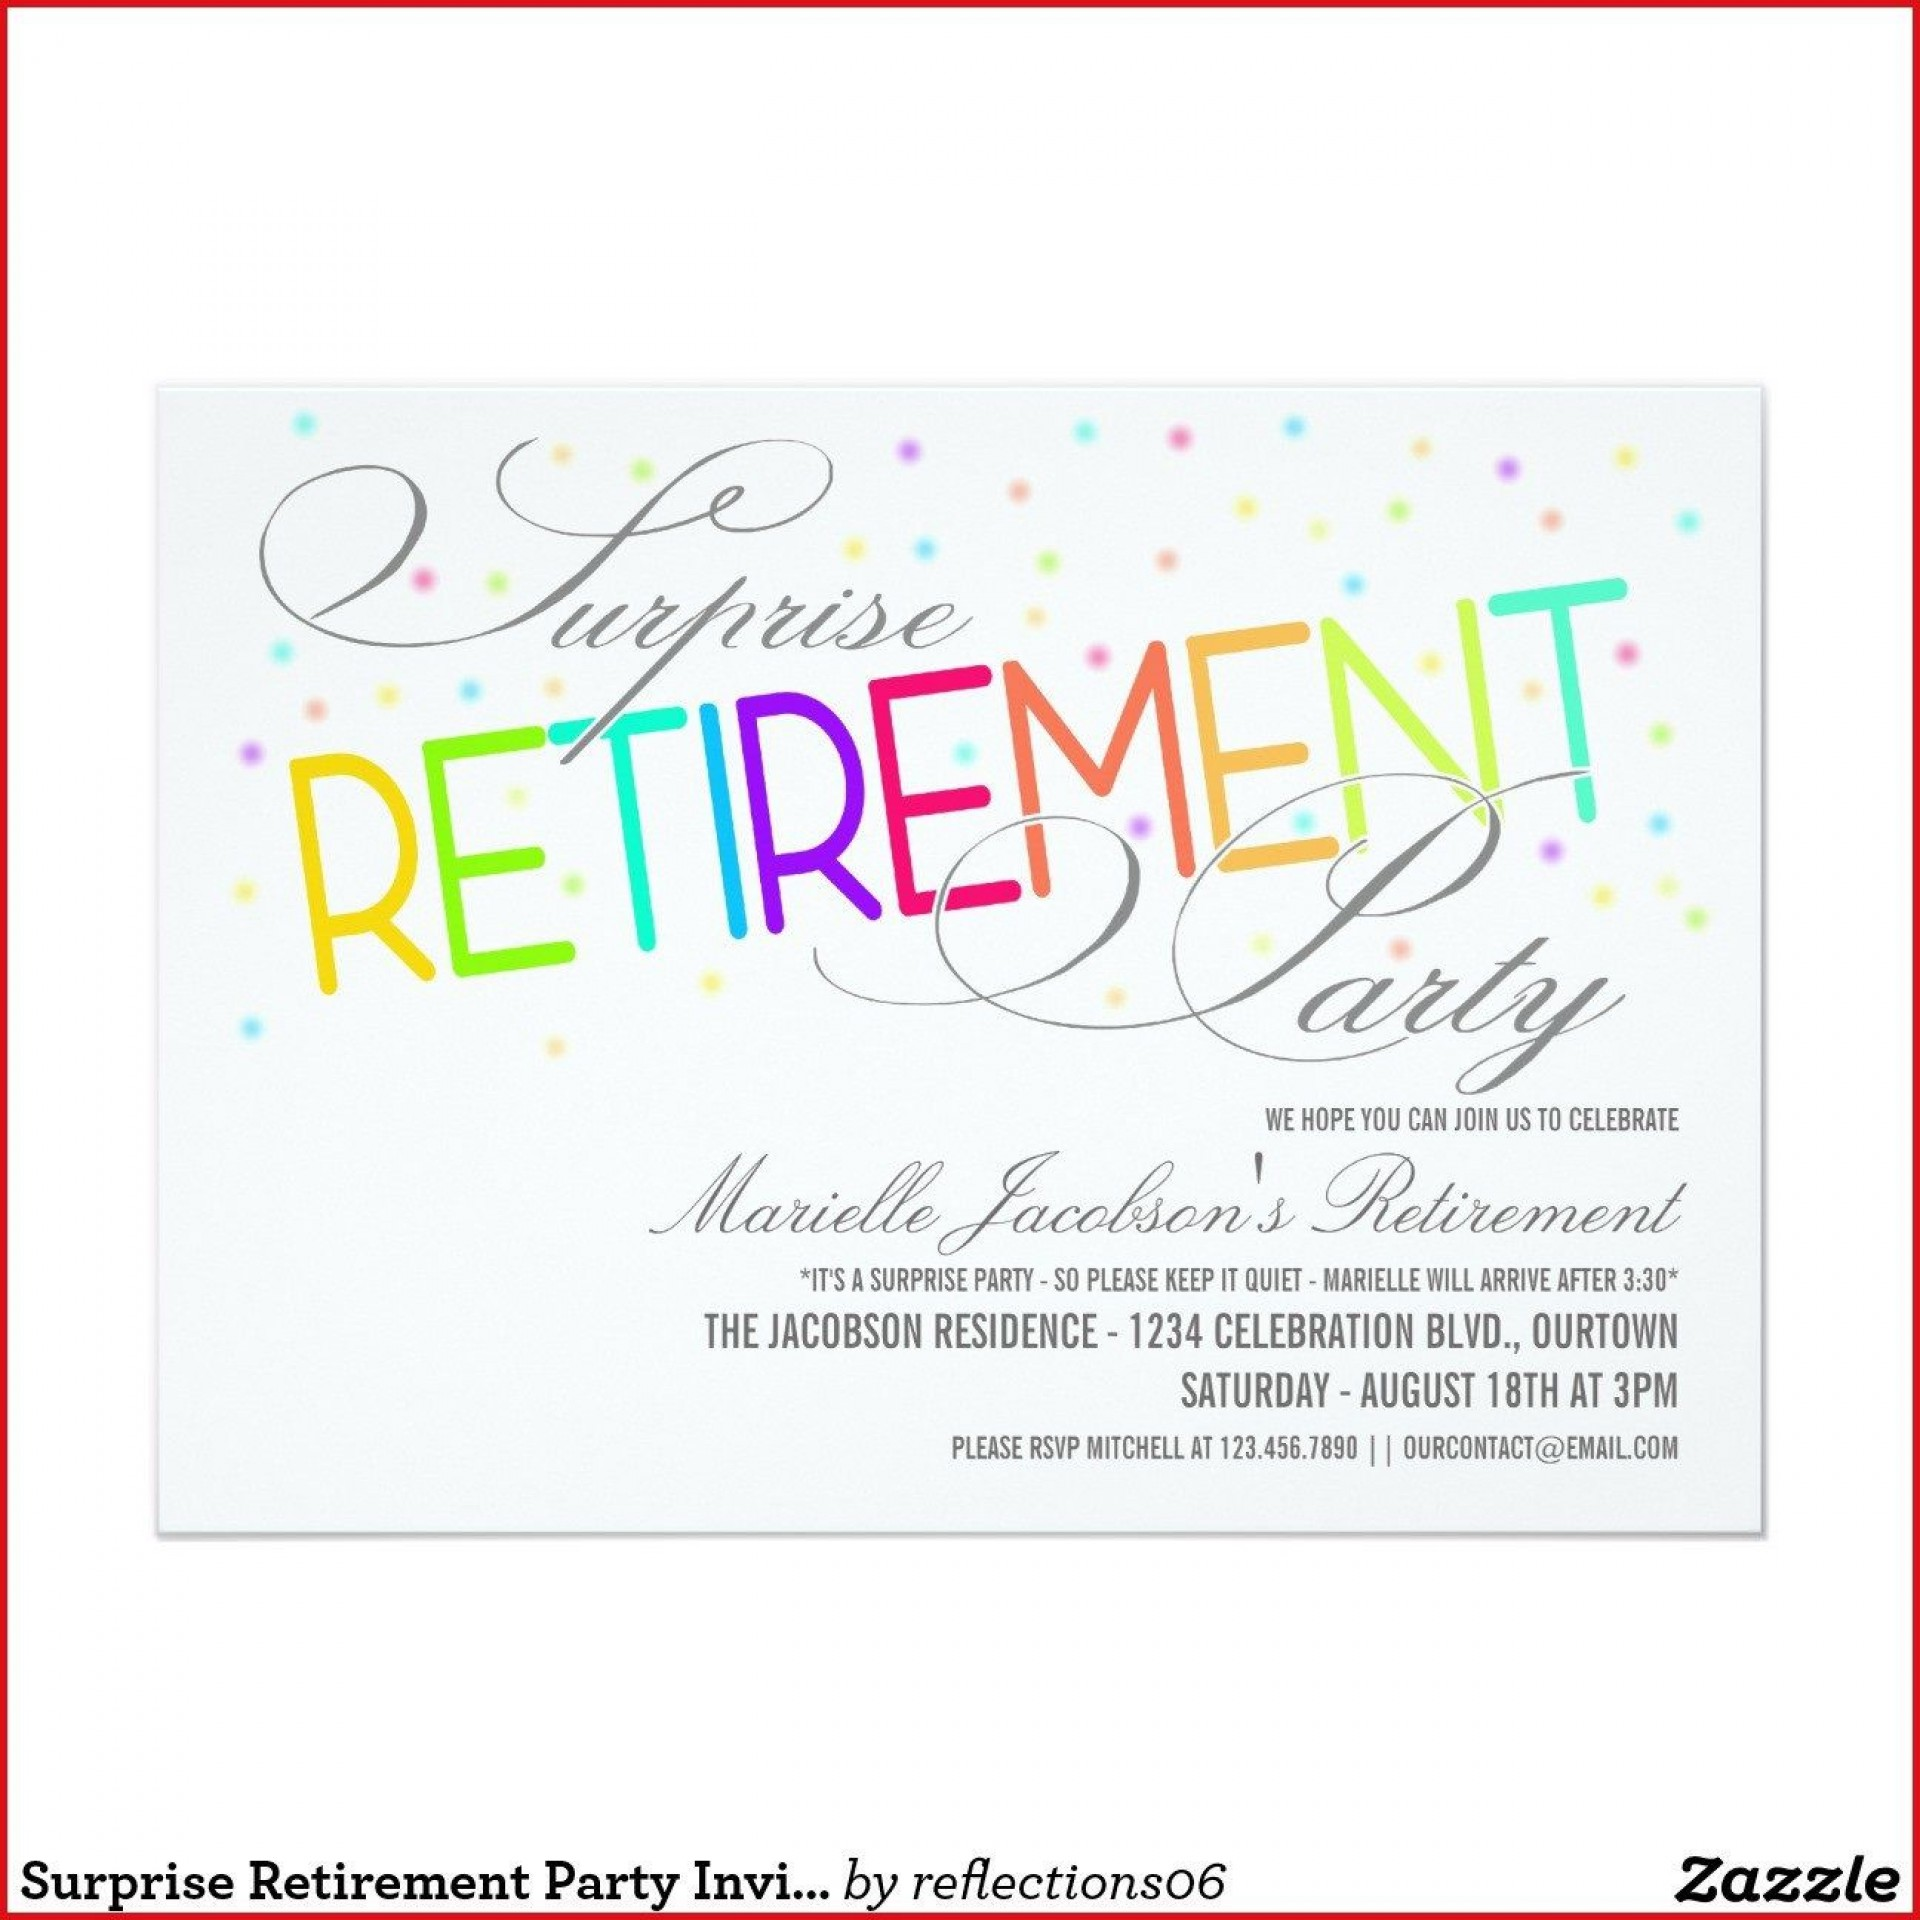 009 Marvelou Retirement Farewell Party Invitation Template Free Picture 1920